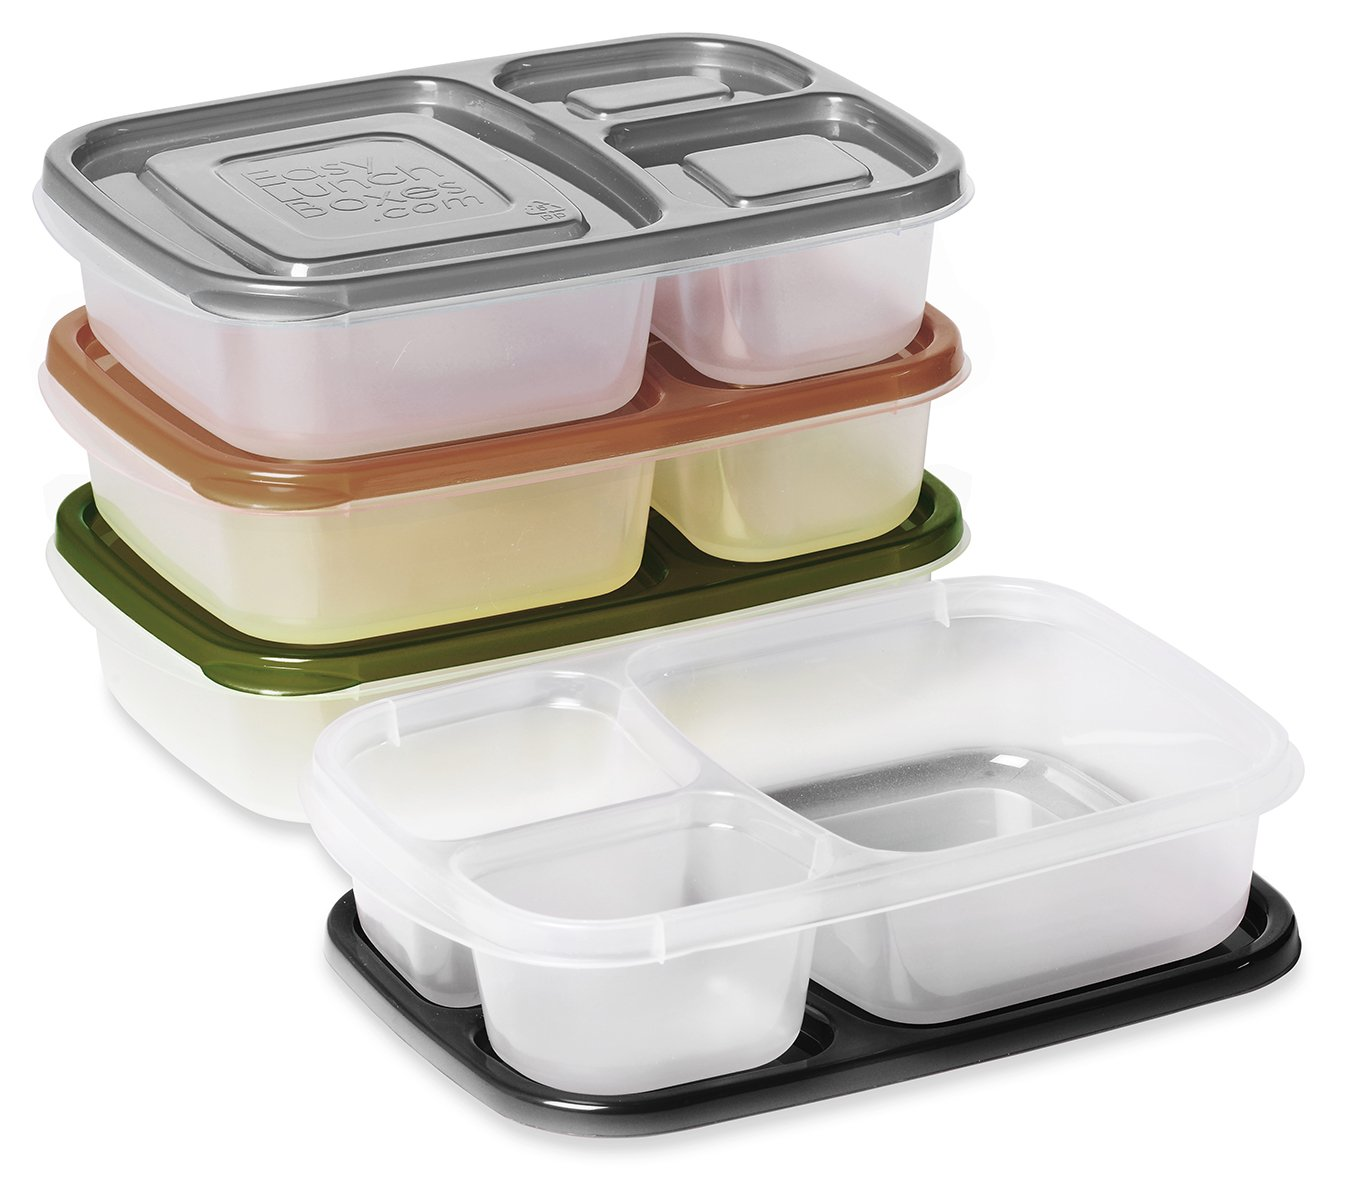 easylunchboxes 3 compartment bento lunch box containers set of 4 urban amazon. Black Bedroom Furniture Sets. Home Design Ideas